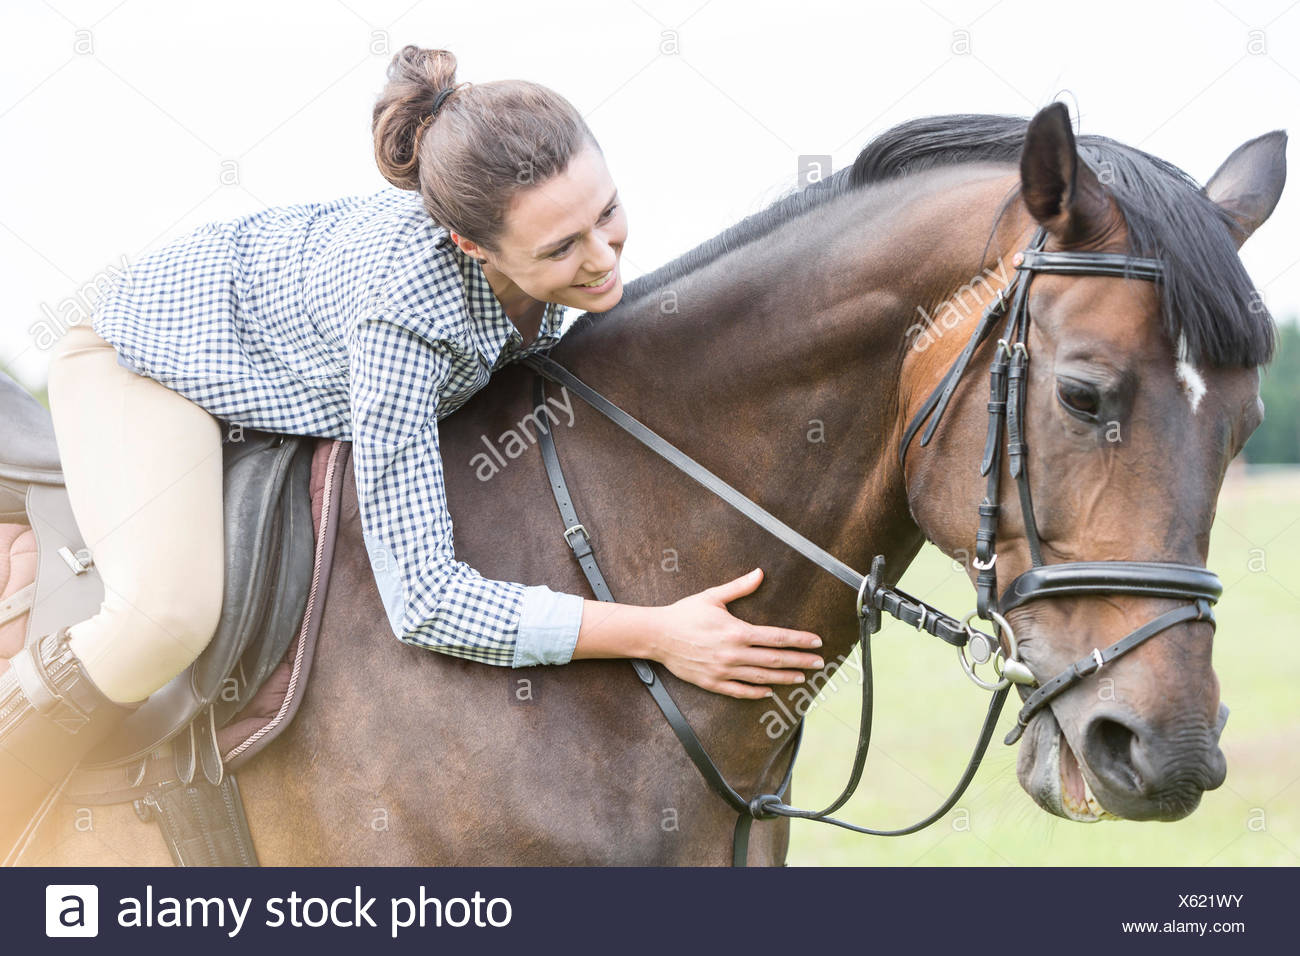 Smiling woman horseback riding leaning and petting horse - Stock Image